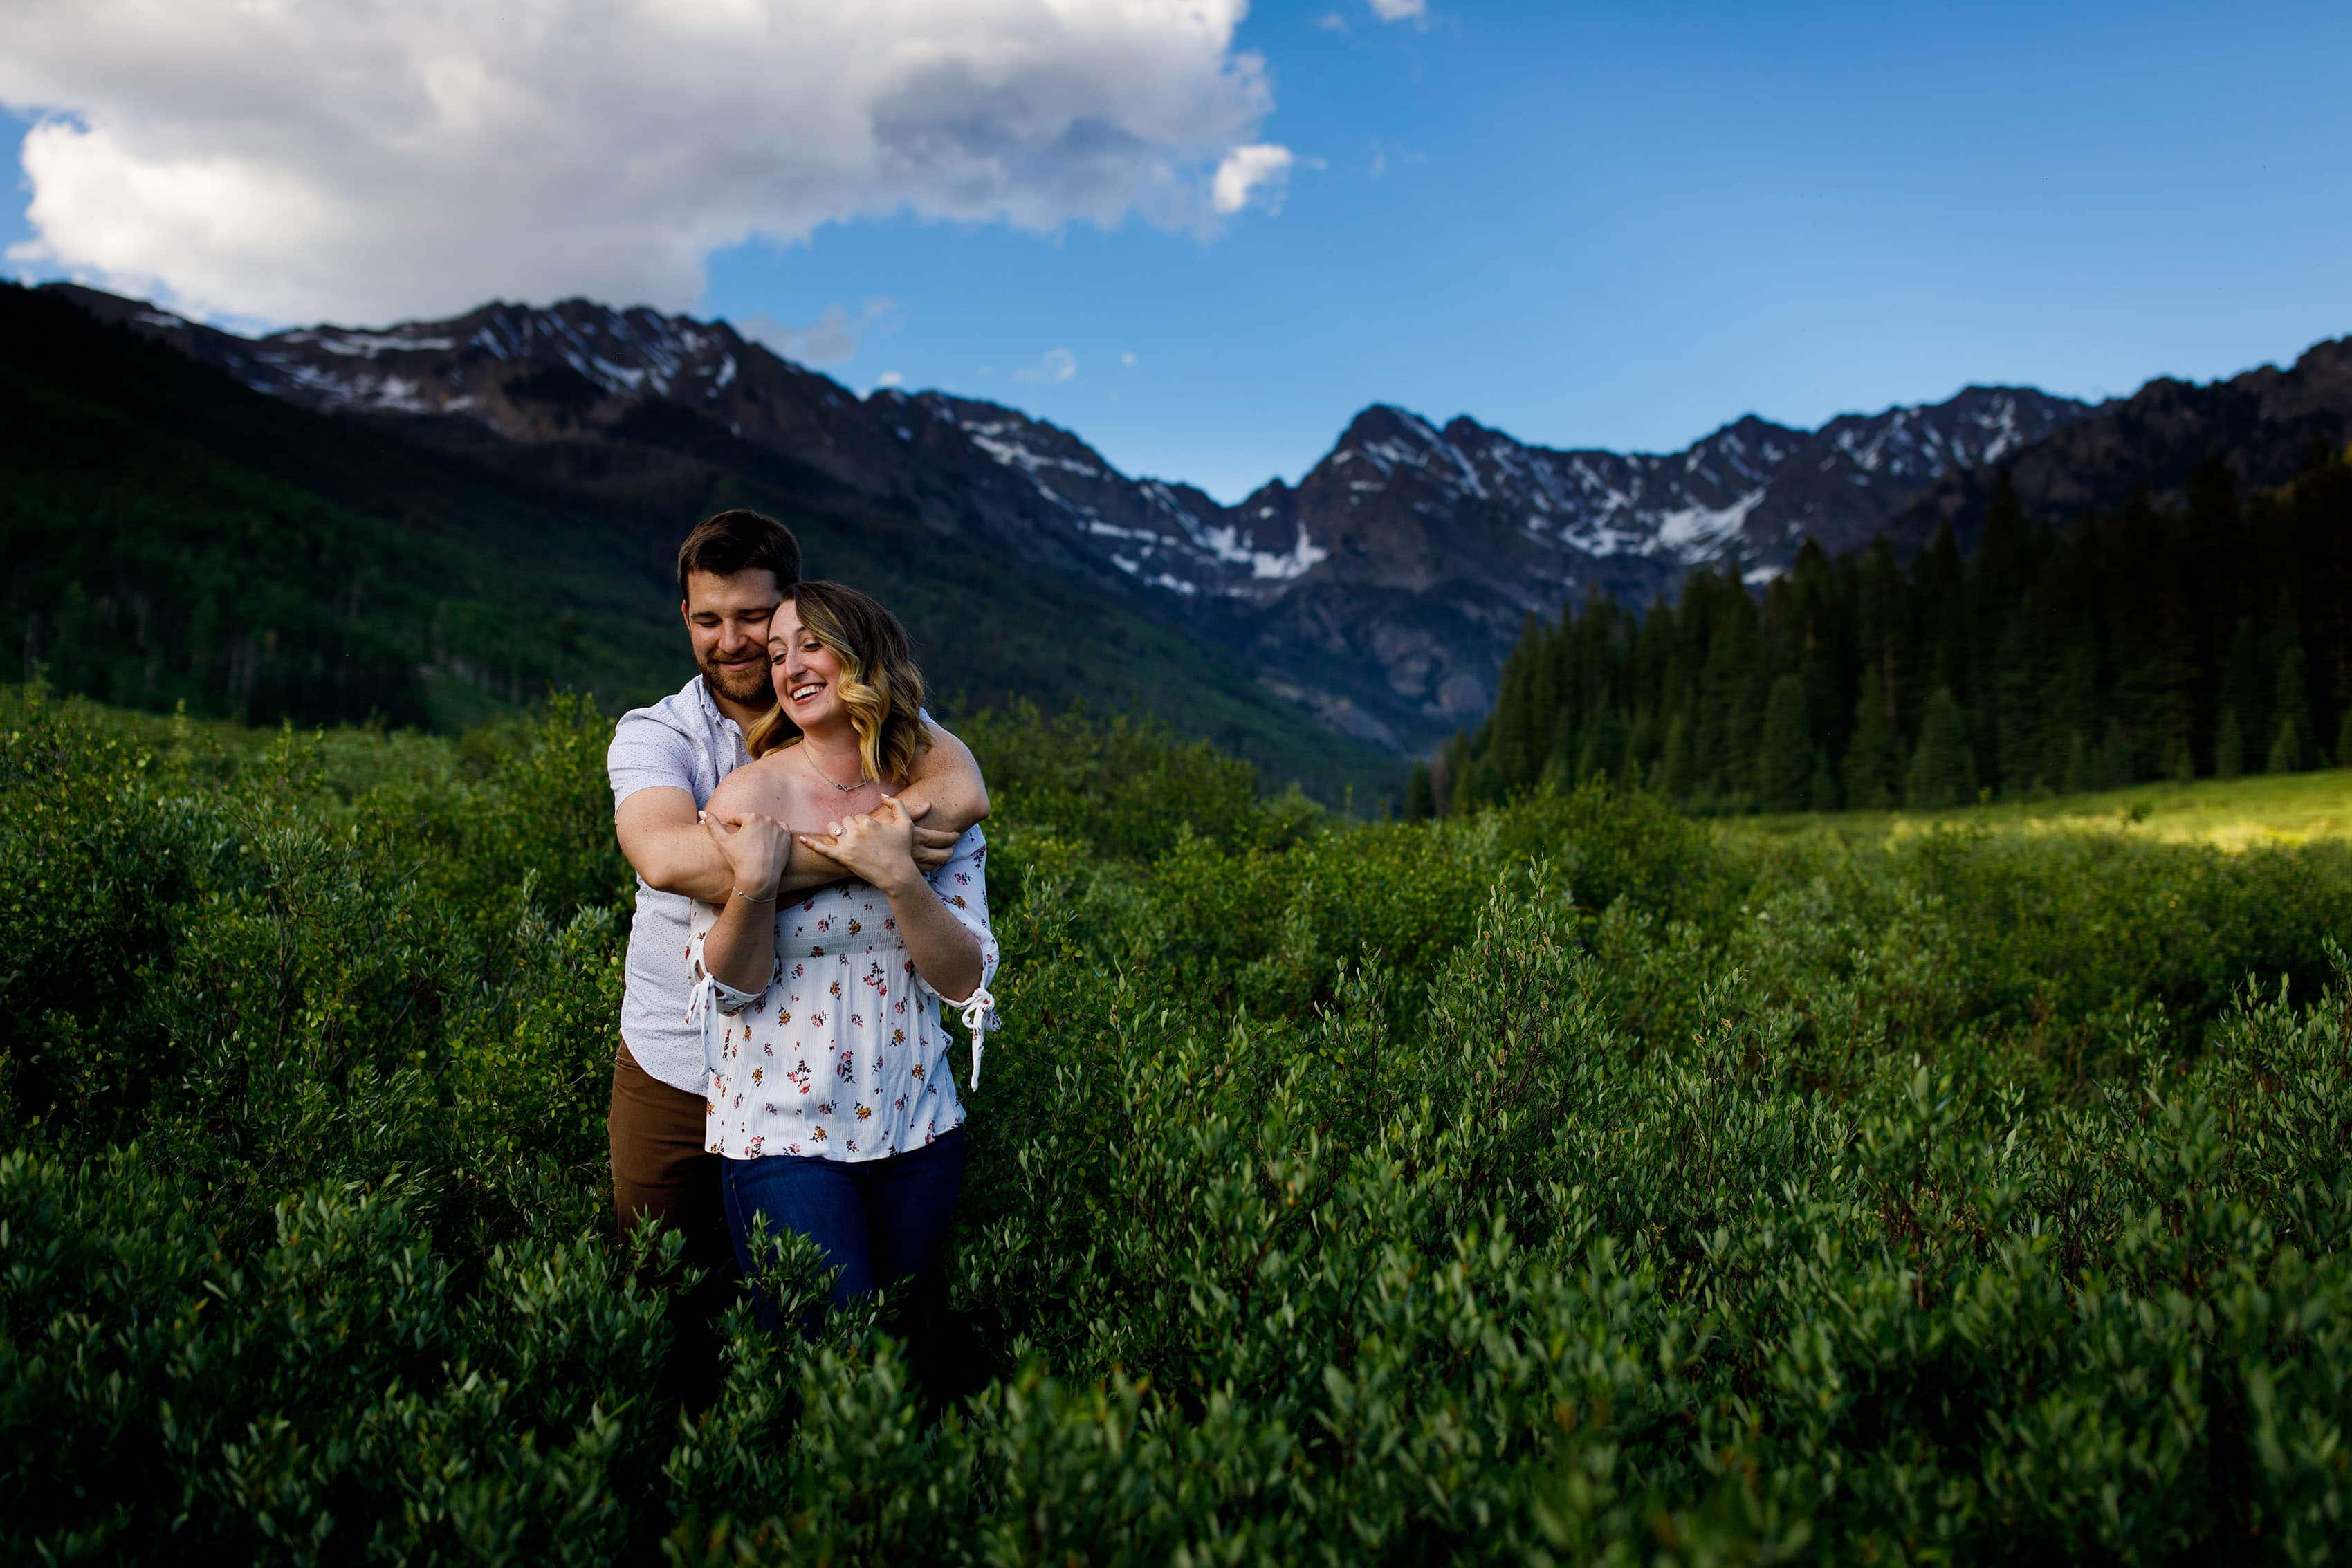 Laura and Ryan share a moment at Piney Lake in Vail